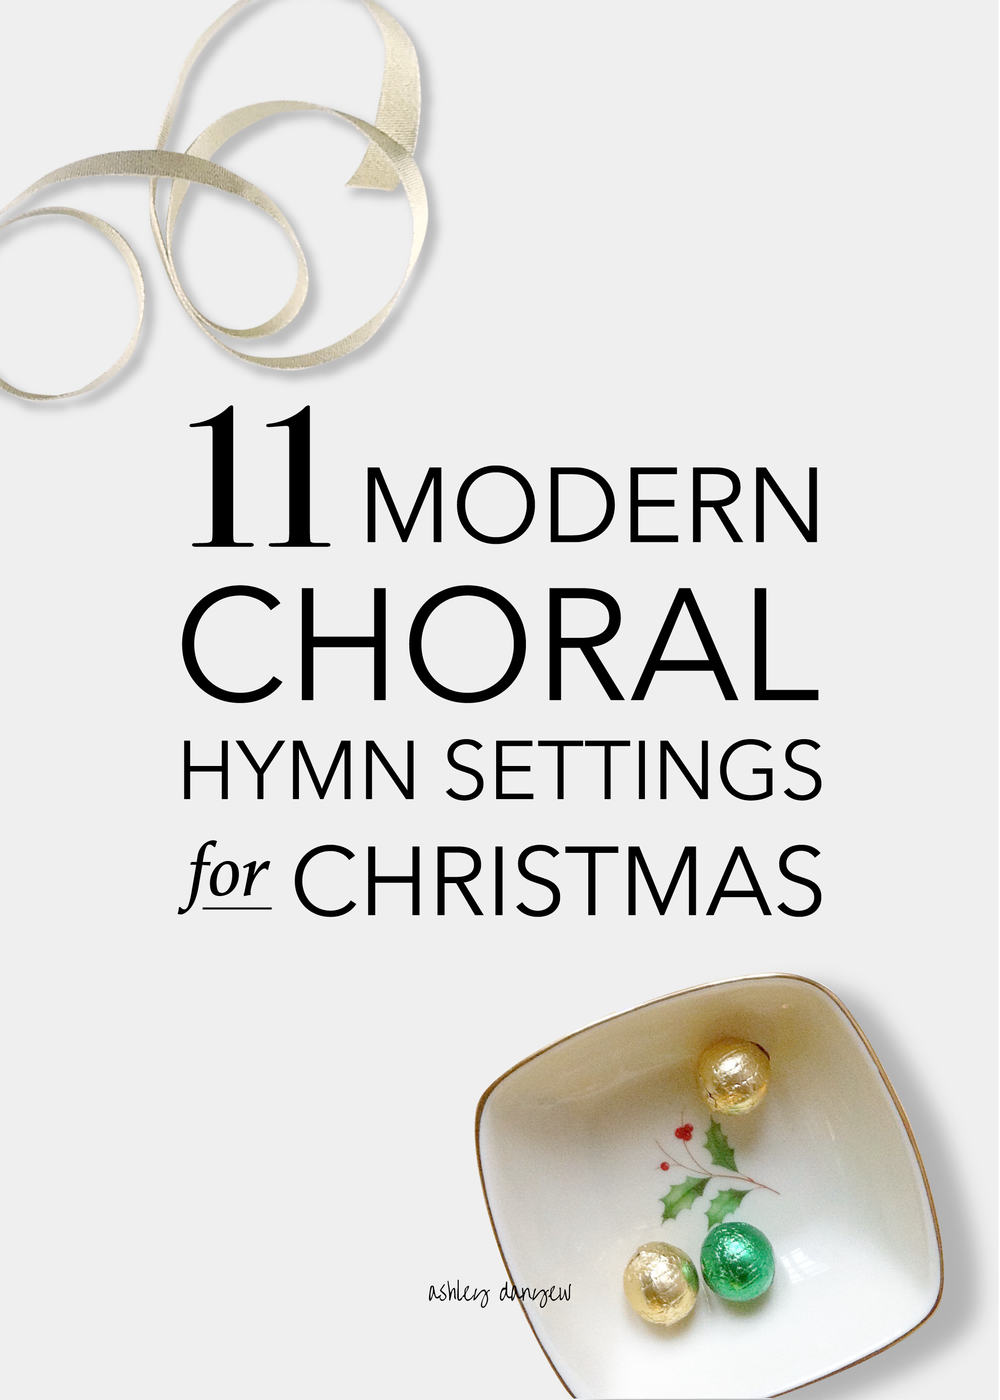 11 modern choral hymn settings for christmas ashley danyew. Black Bedroom Furniture Sets. Home Design Ideas